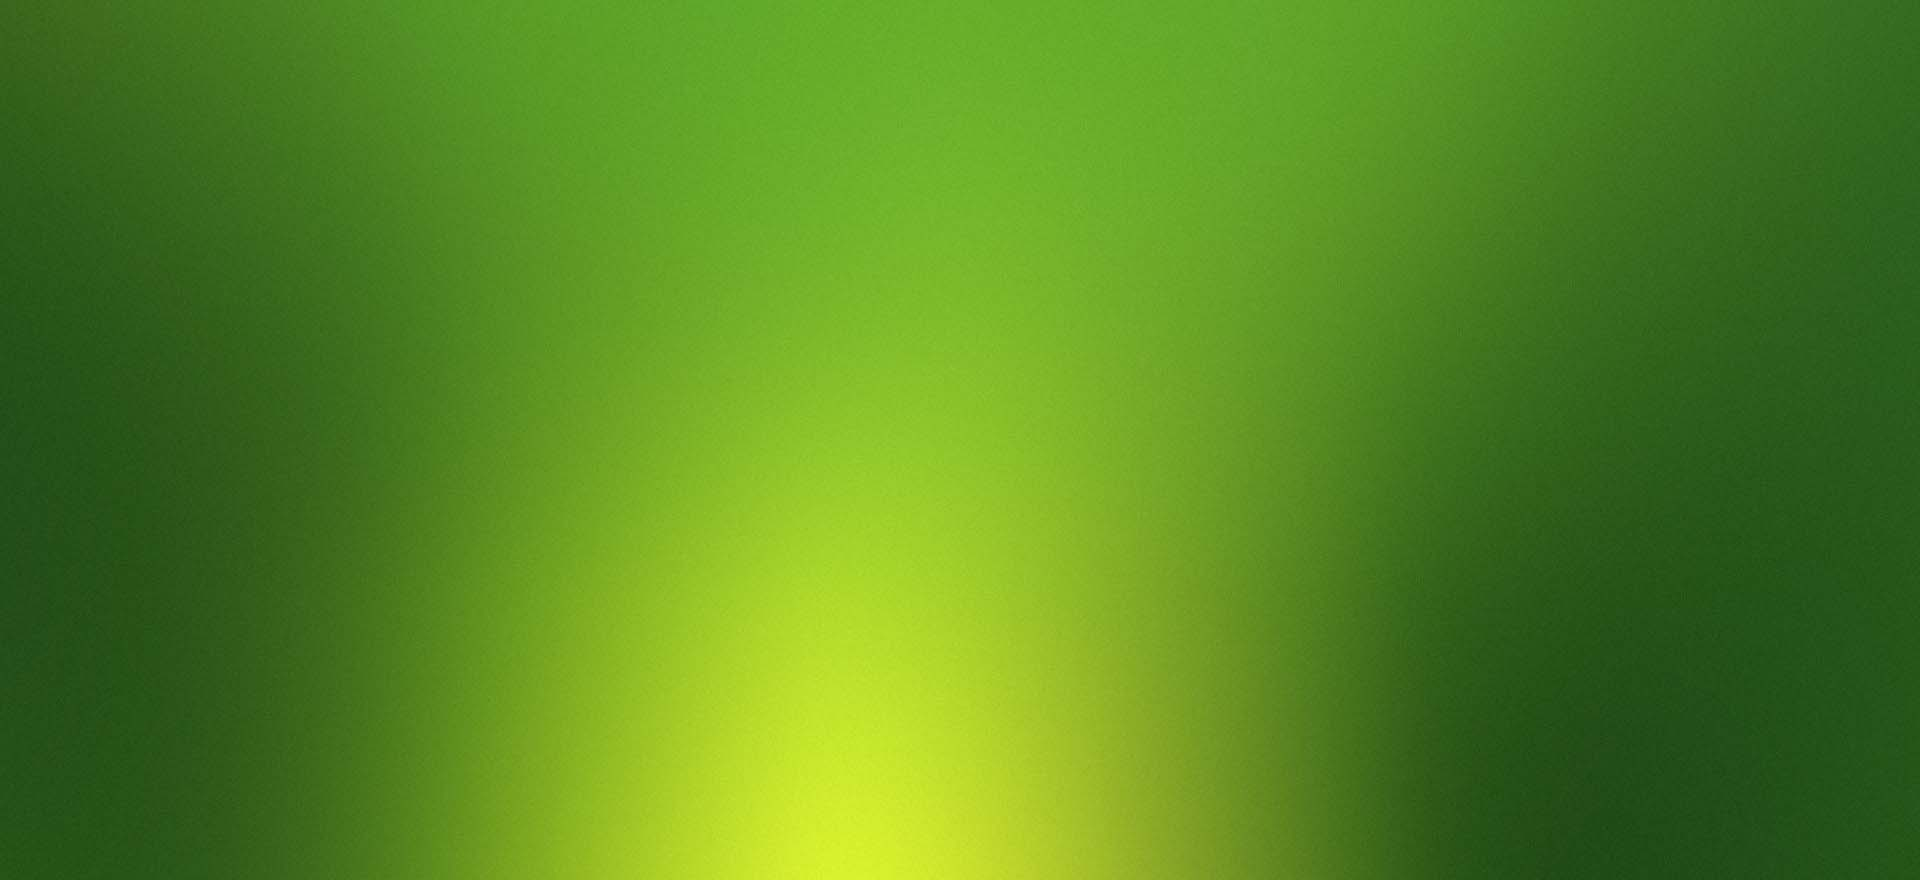 gradient green luminous yellow background  gradual  change  green background image for free download